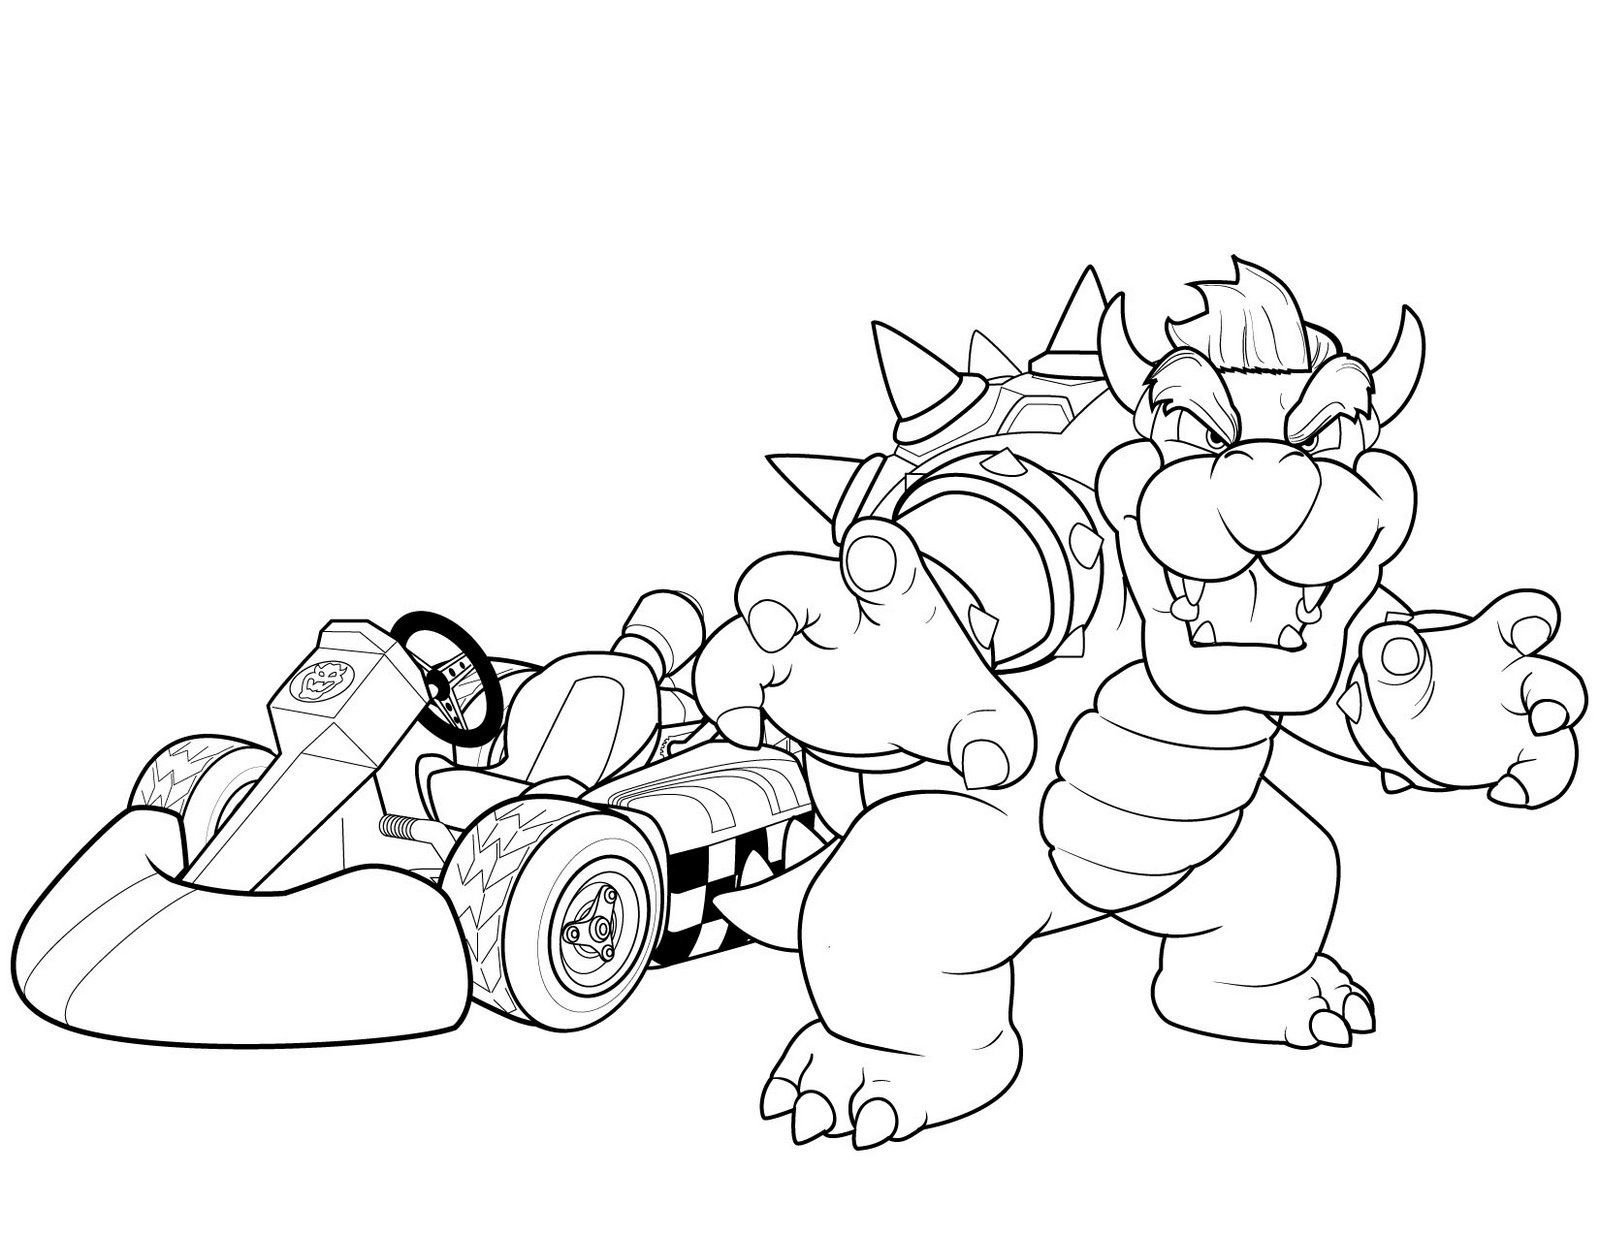 Bowser Coloring Pages Best Coloring Pages For Kids In 2020 Mario Coloring Pages Super Mario Coloring Pages Coloring Pages